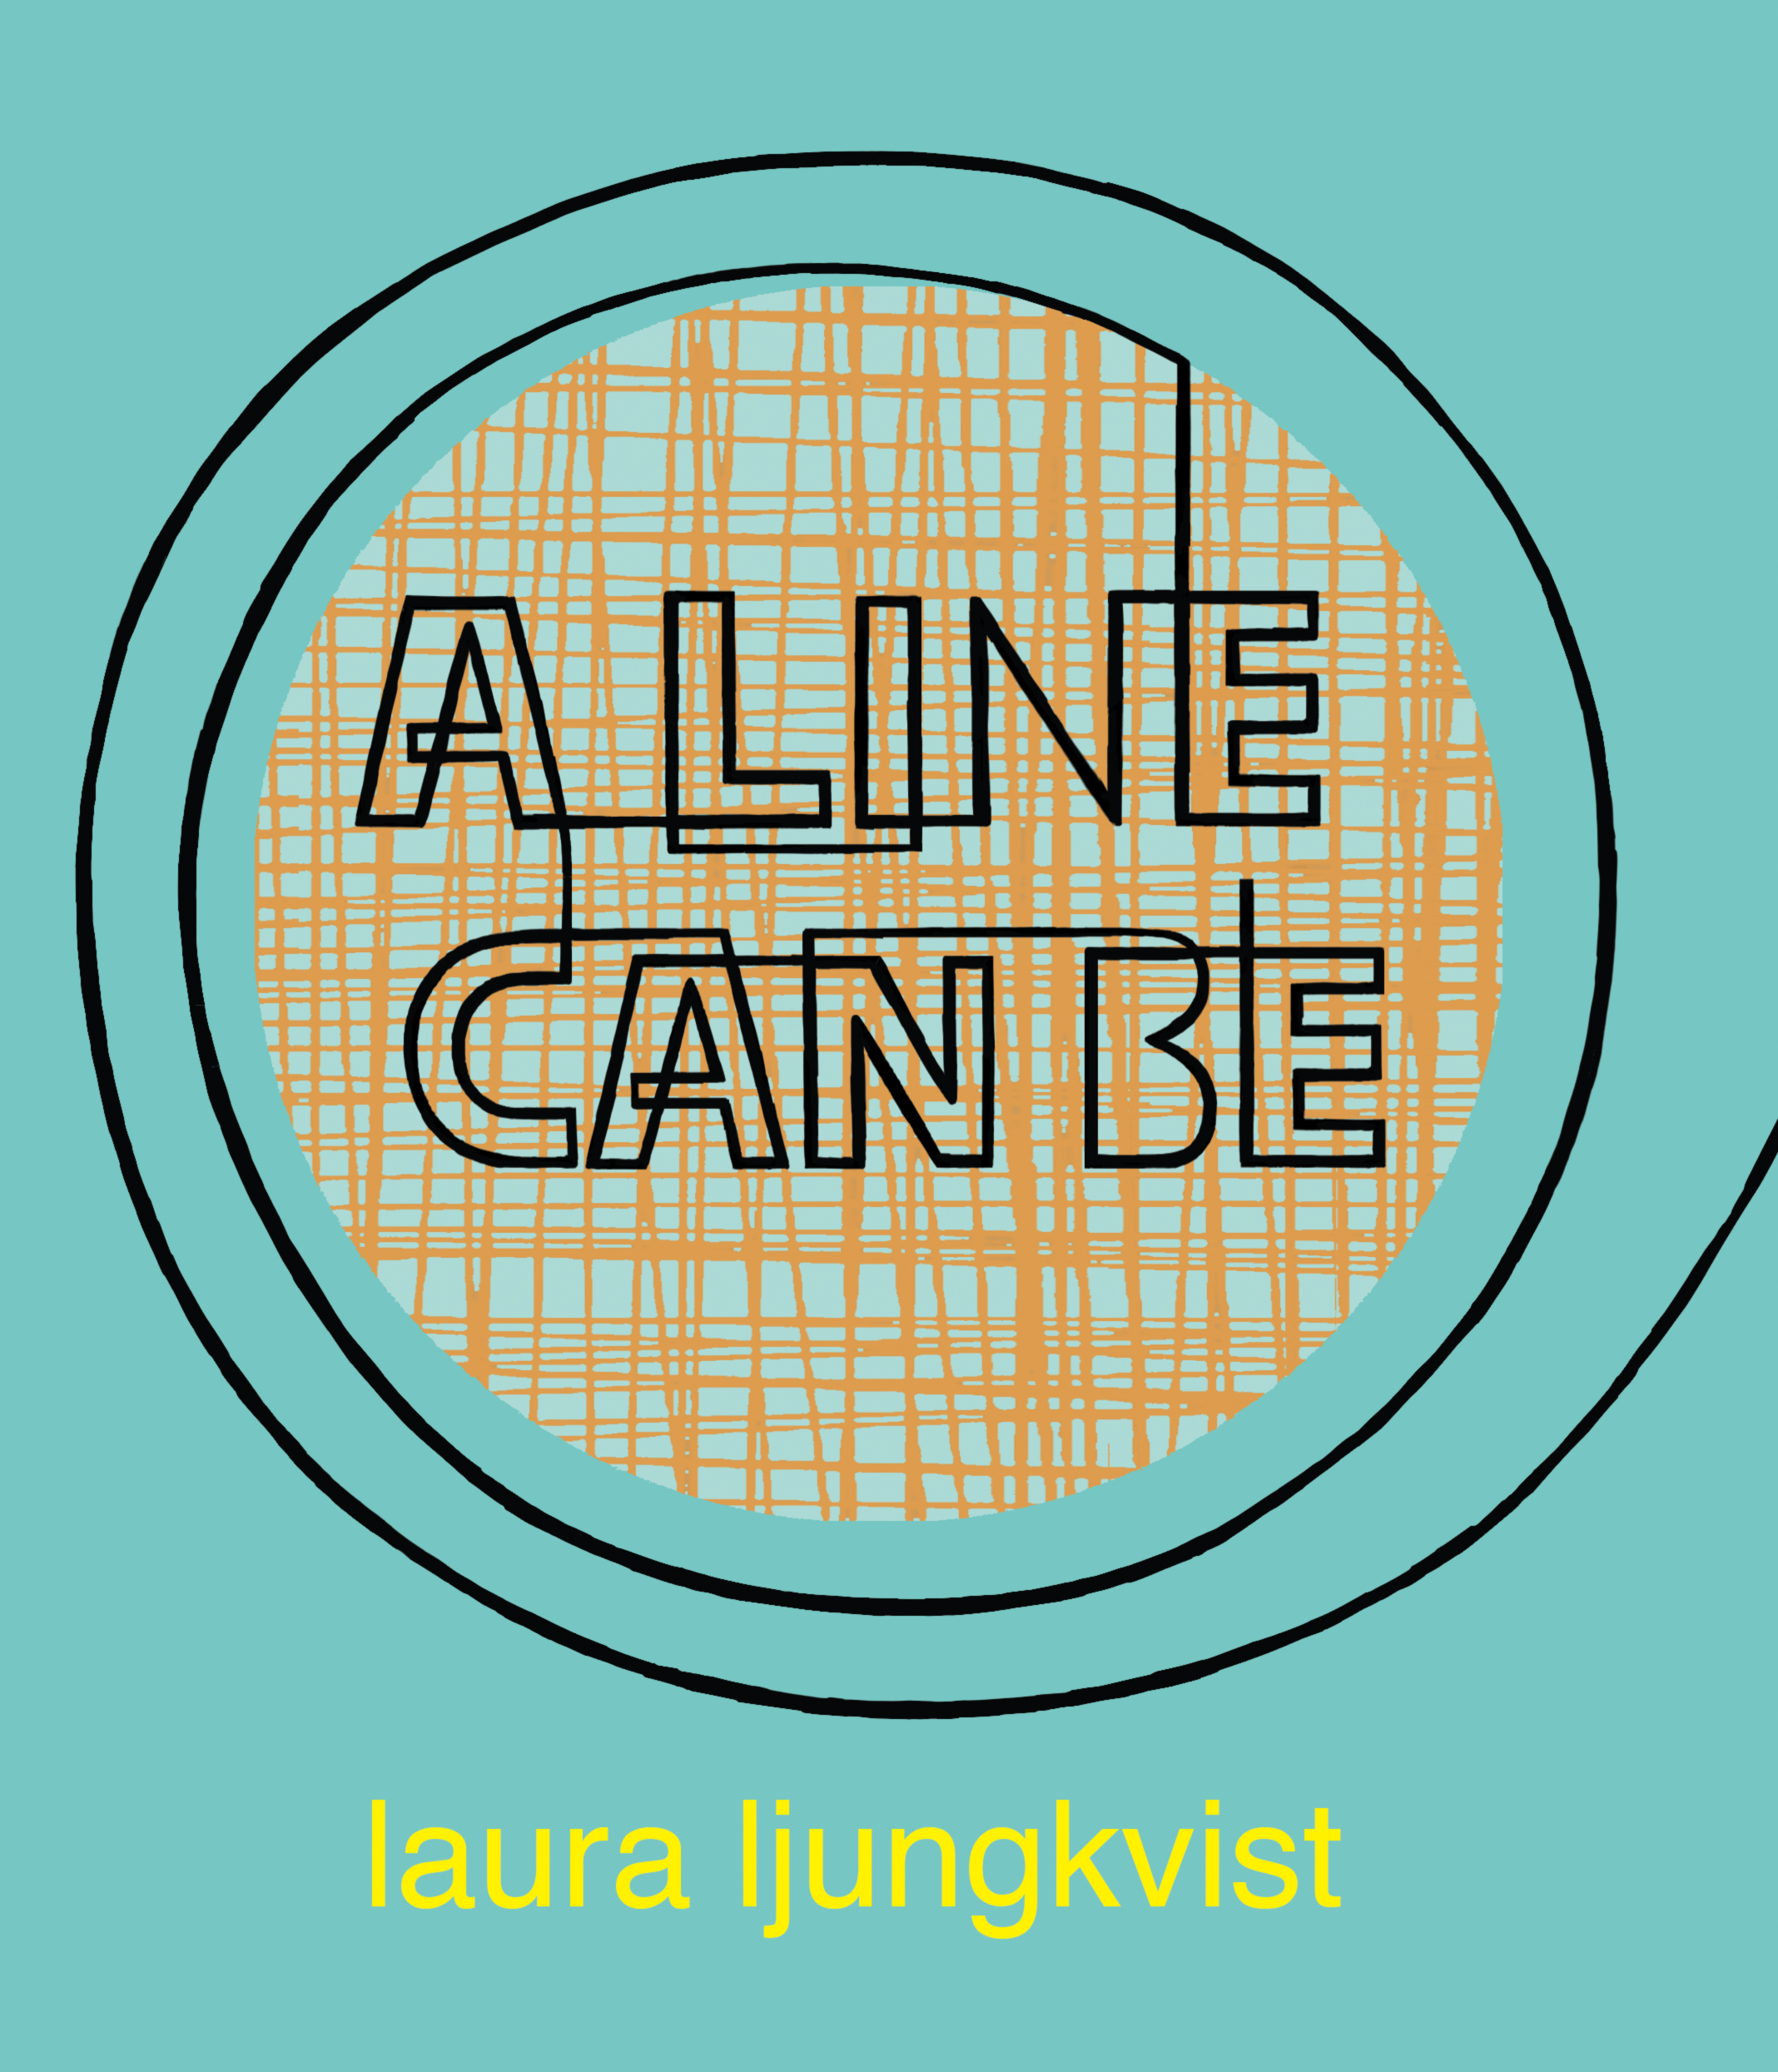 Sunday Story Time with Laura Ljungkvist (author of A Line Can Be...)